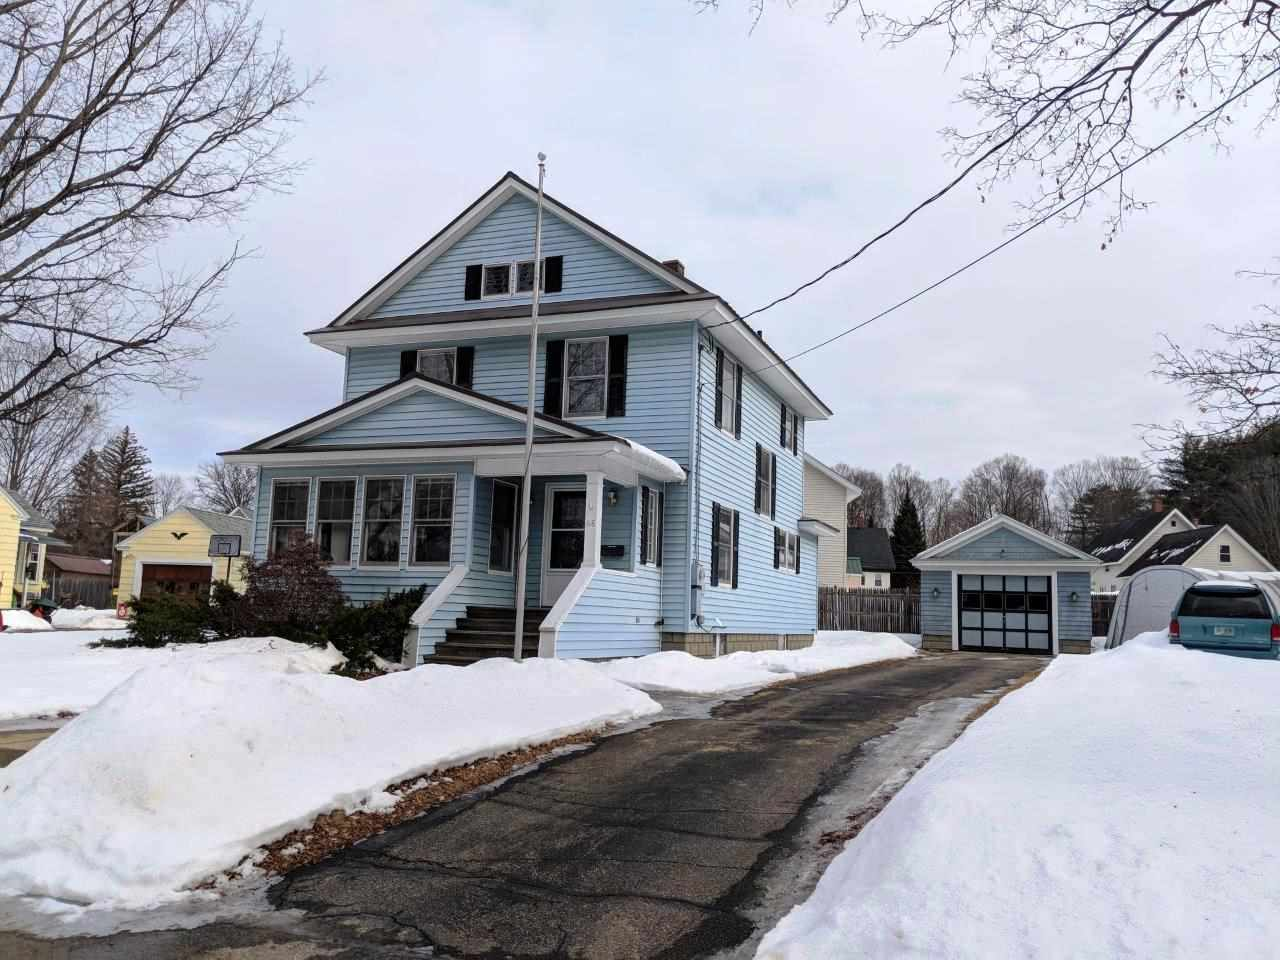 Photo of 68 Garfield Street Laconia NH 03246